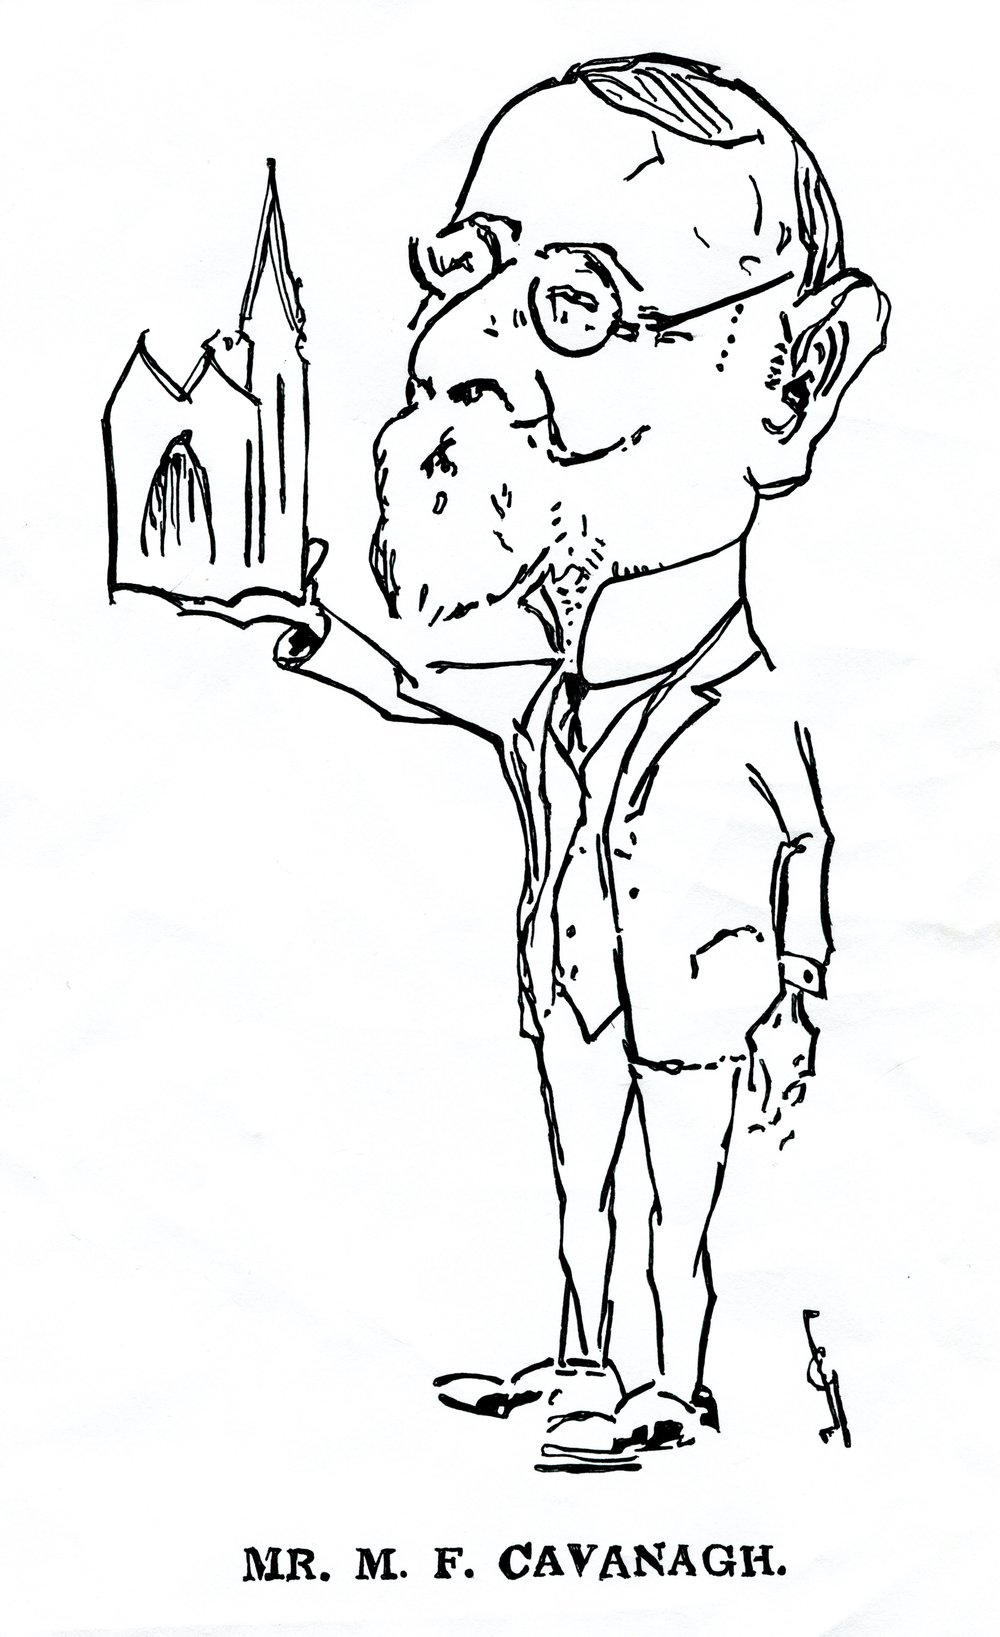 Michael Francis Cavanagh as depicted in The Daily News, 2 April 1929, during reconstruction of St Mary's Cathedral.